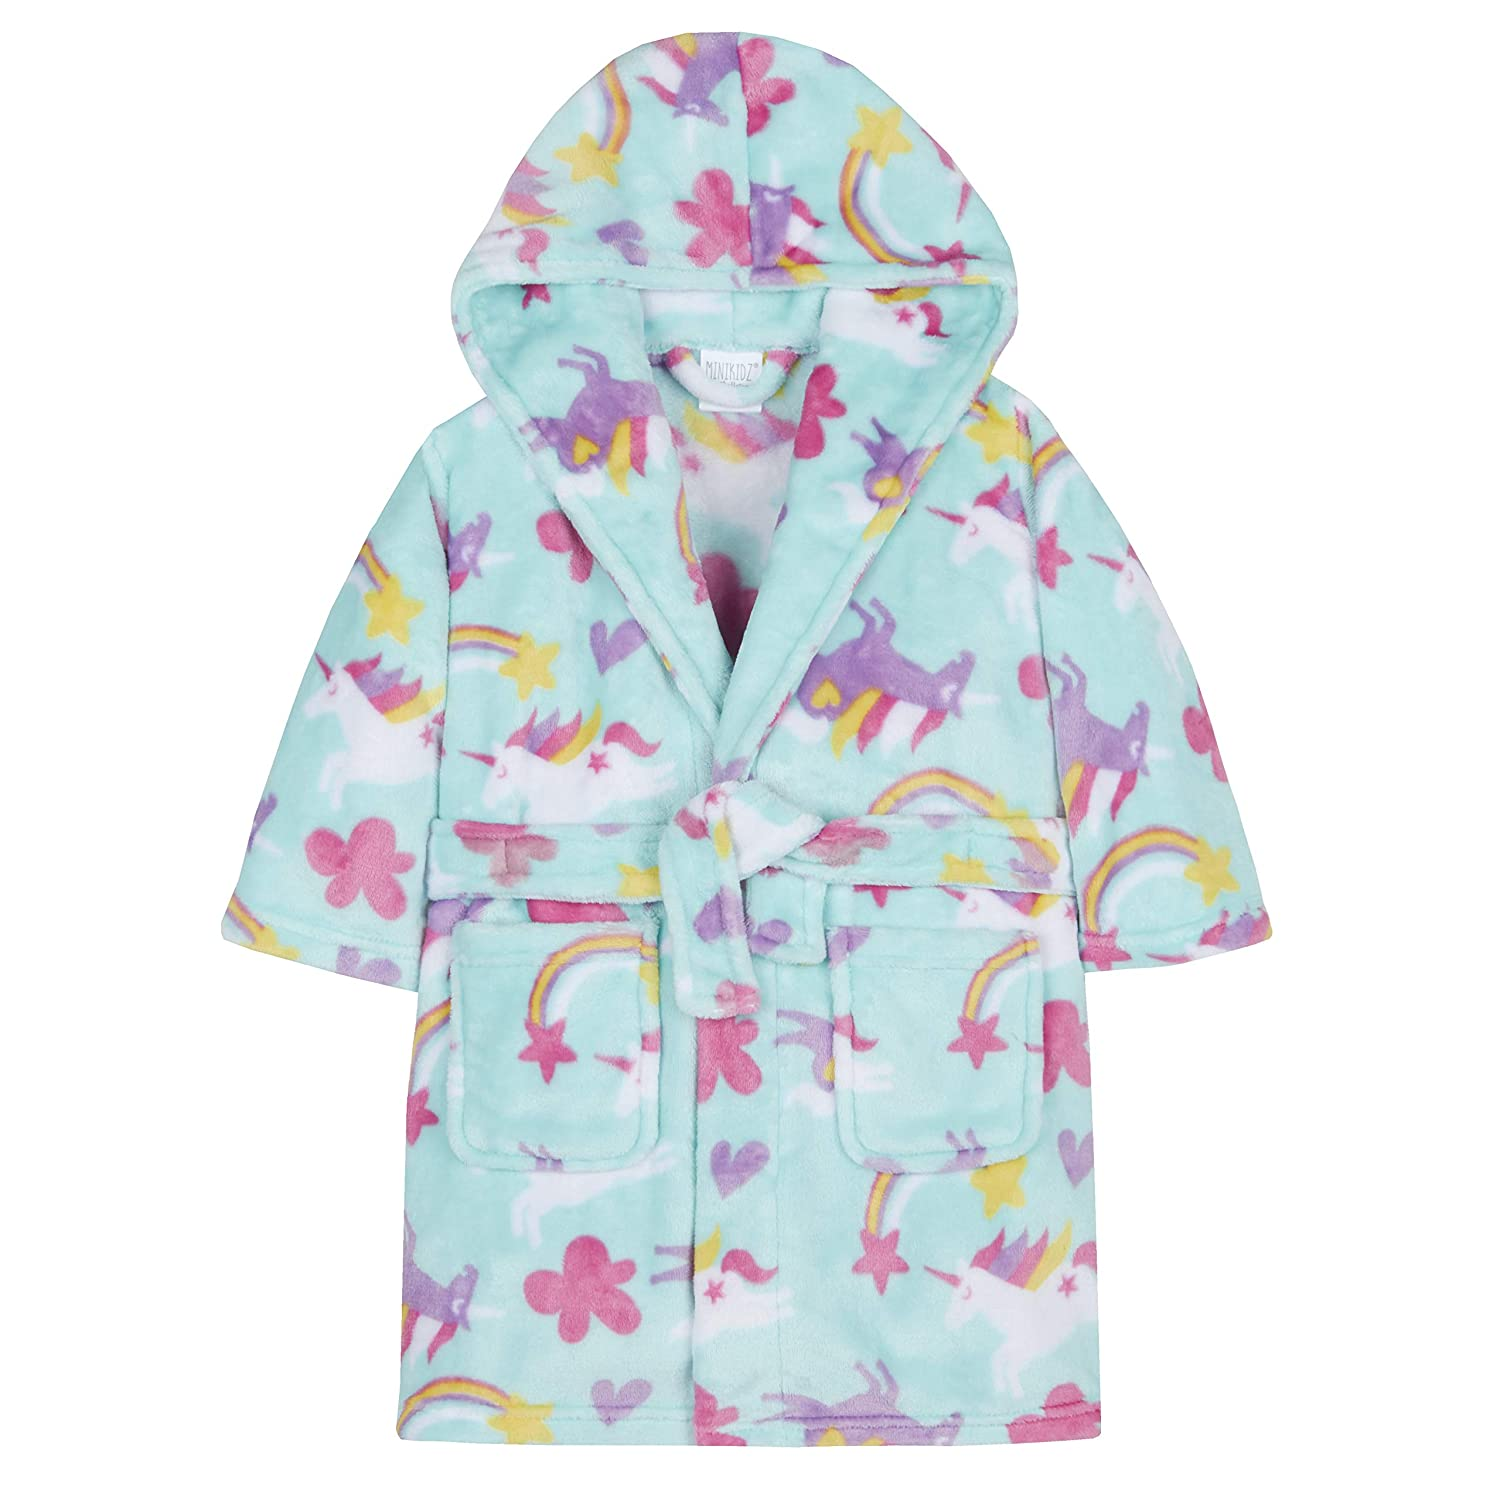 MiniKidz Girls Unicorn & Rainbow Print Dressing Gown Aqua)